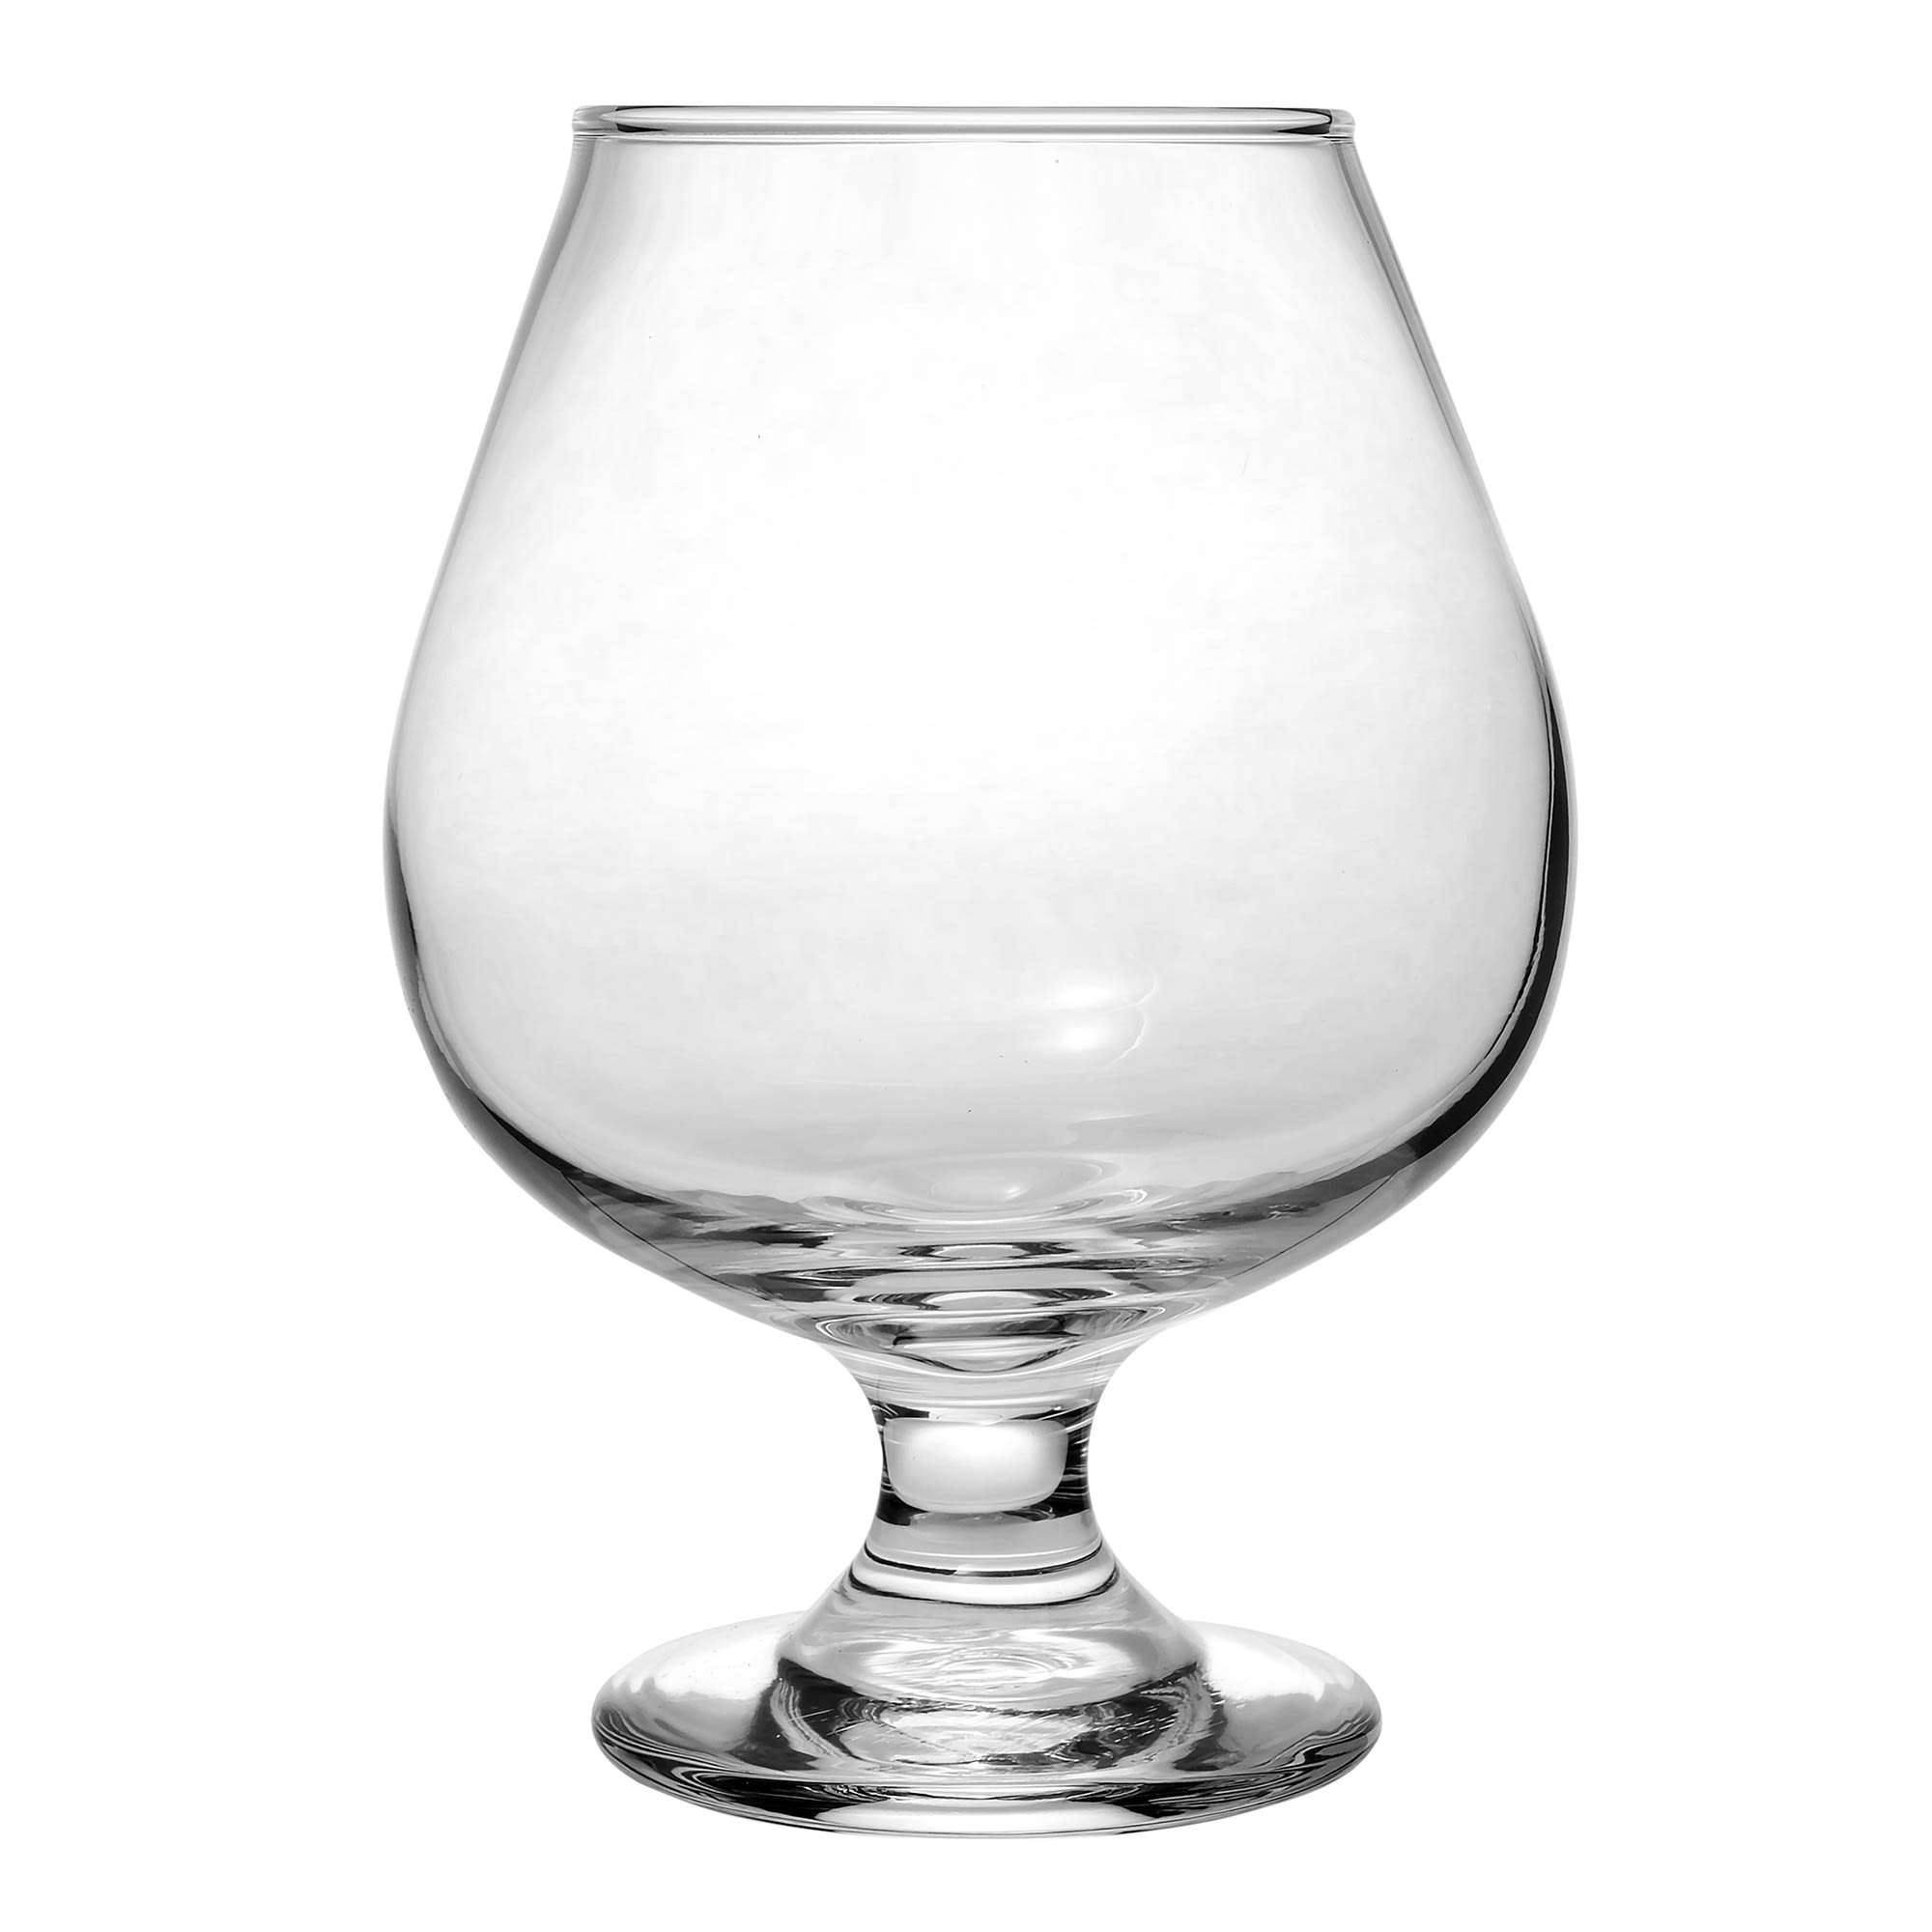 Libbey 3708 17.5 oz Embassy Brandy Glass - Safedge Rim & Foot Guarantee